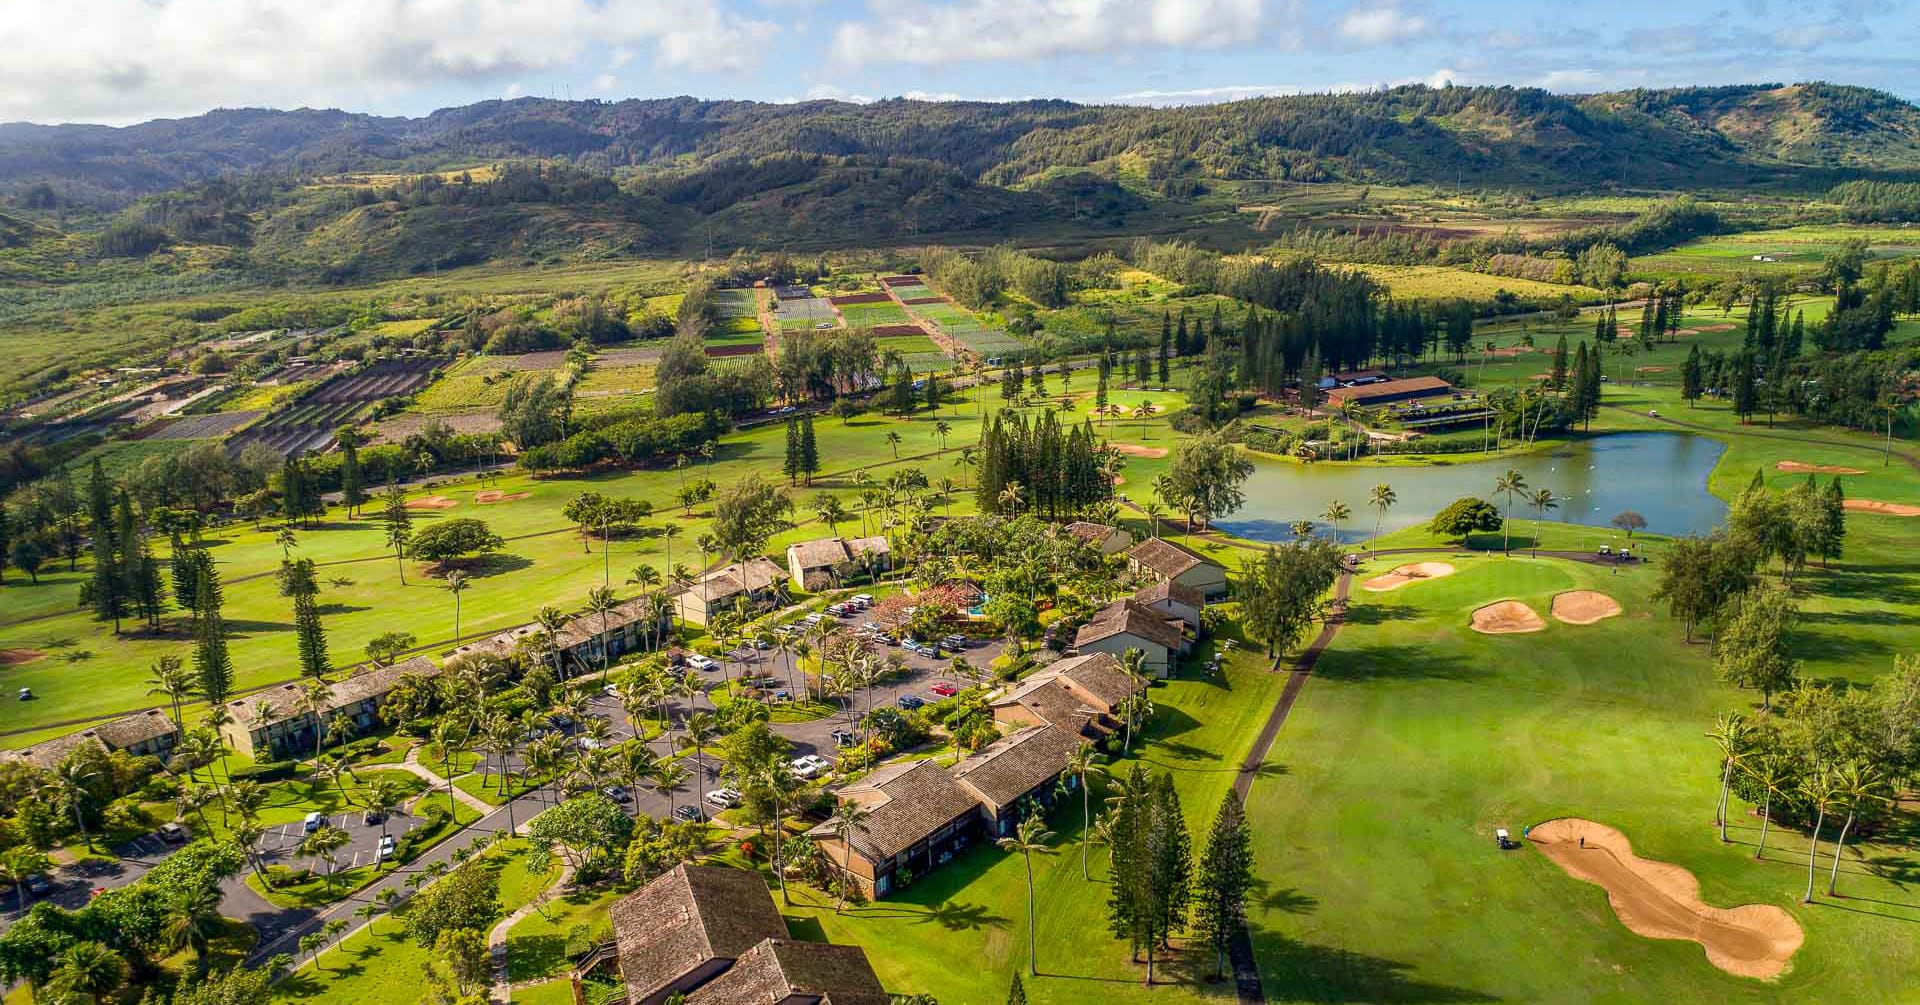 Turtle Bay Resort Cottages and Golf Aerial